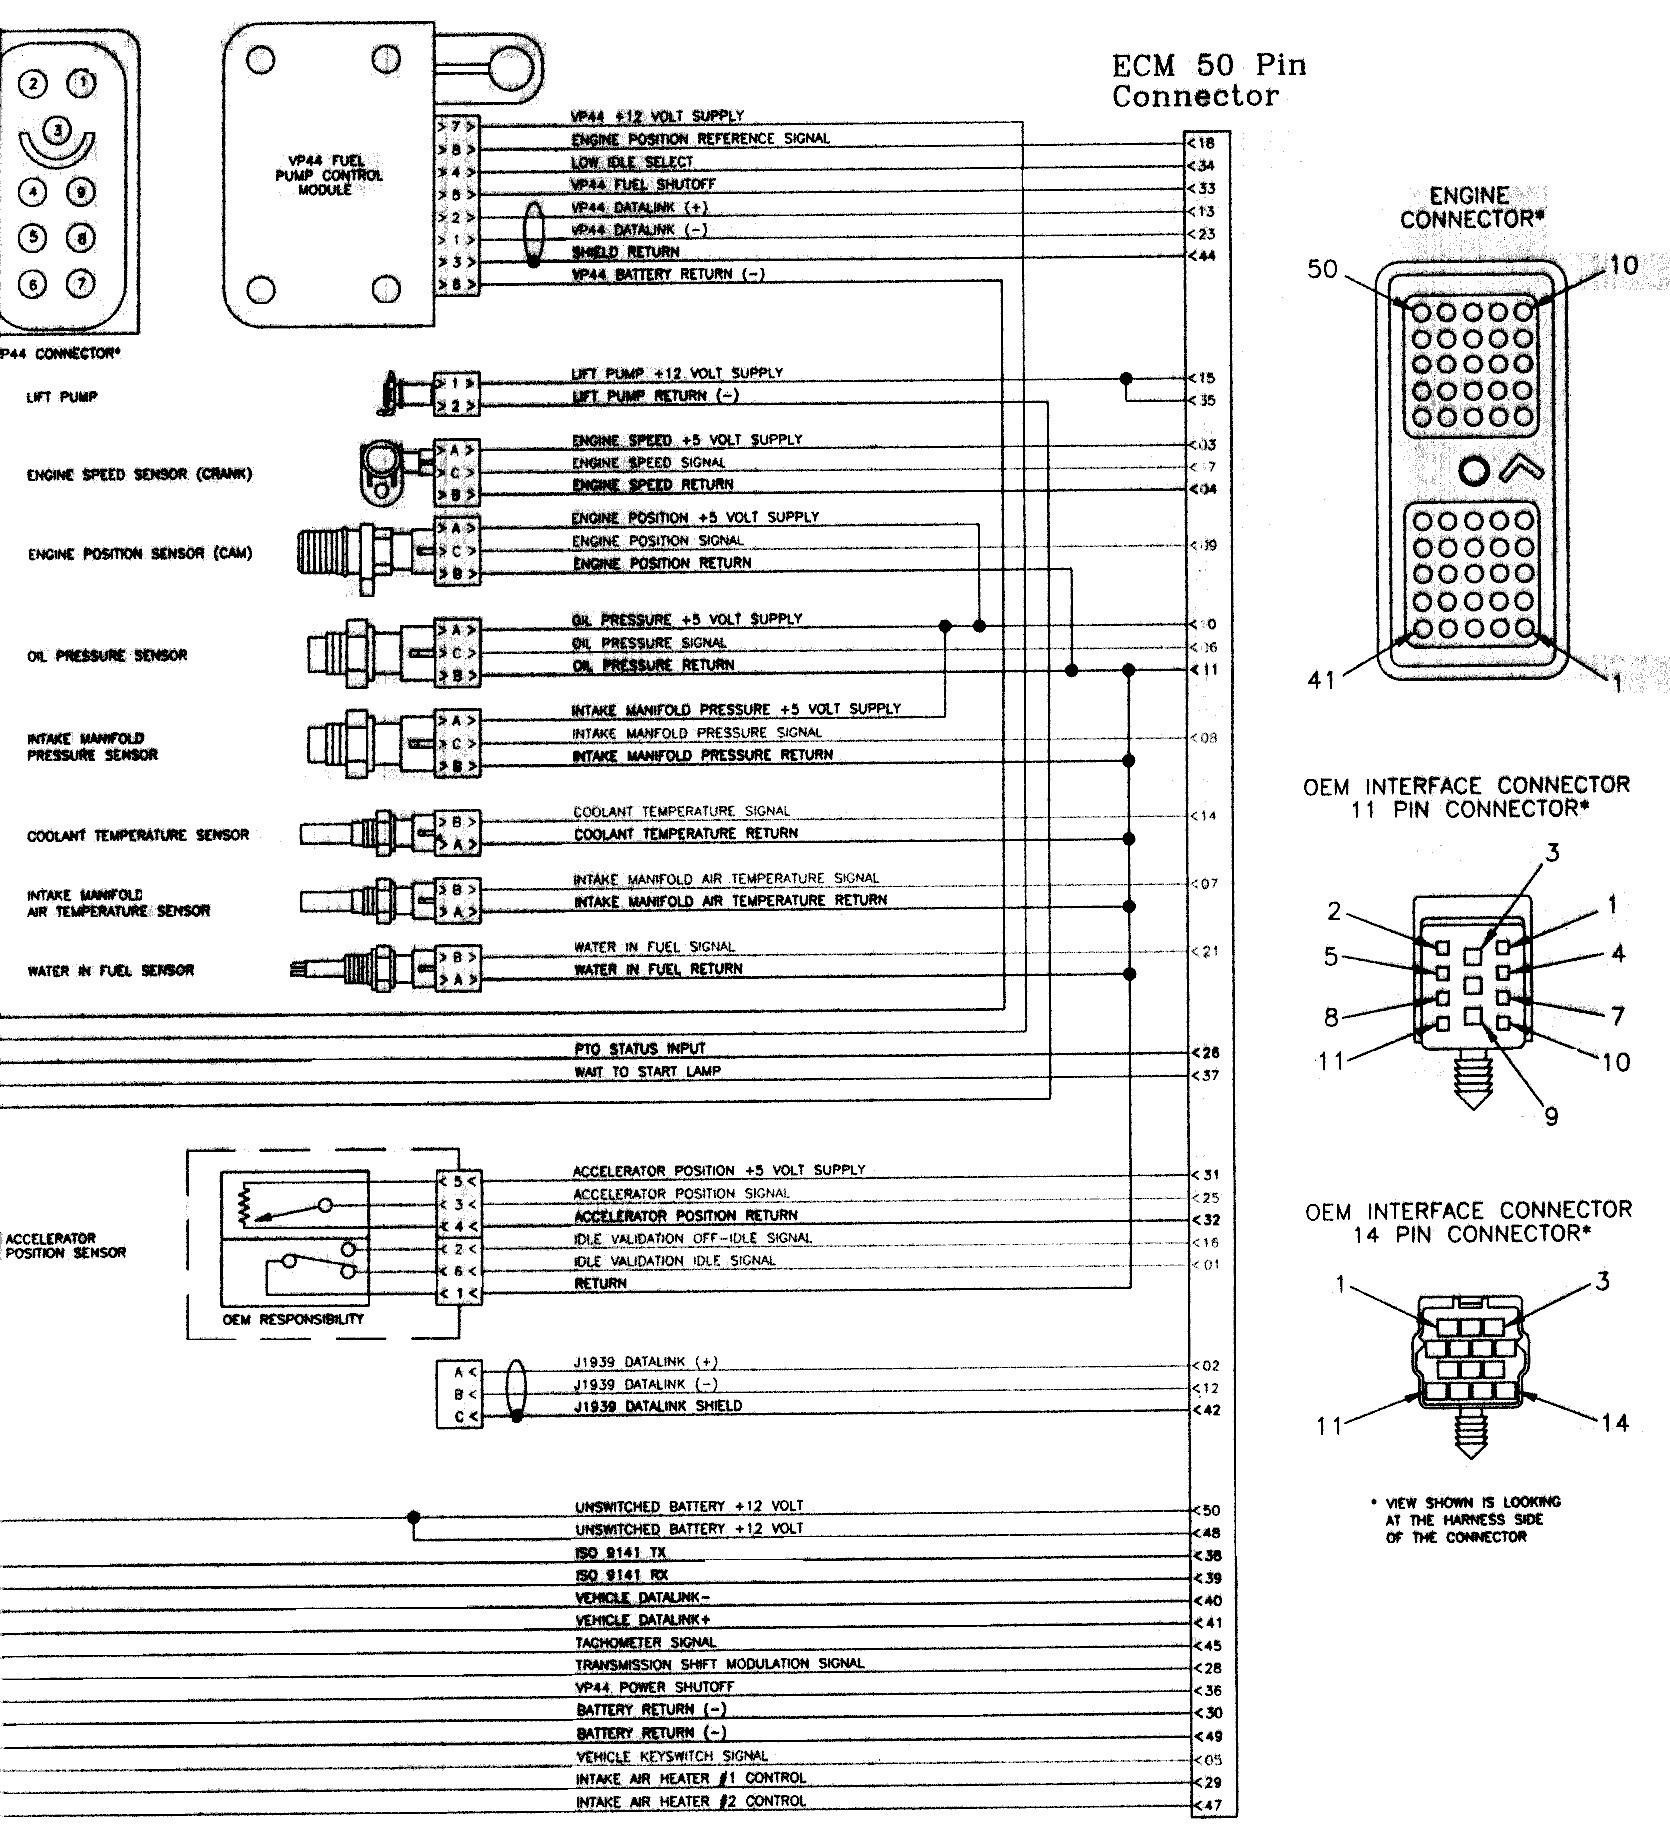 DIAGRAM] Wiring Diagram 1994 Dodge 2500 FULL Version HD Quality Dodge 2500  - ELECTRICMOTORSNOLA.ANTONELLABEVILACQUA.ITAntonellabevilacqua.it